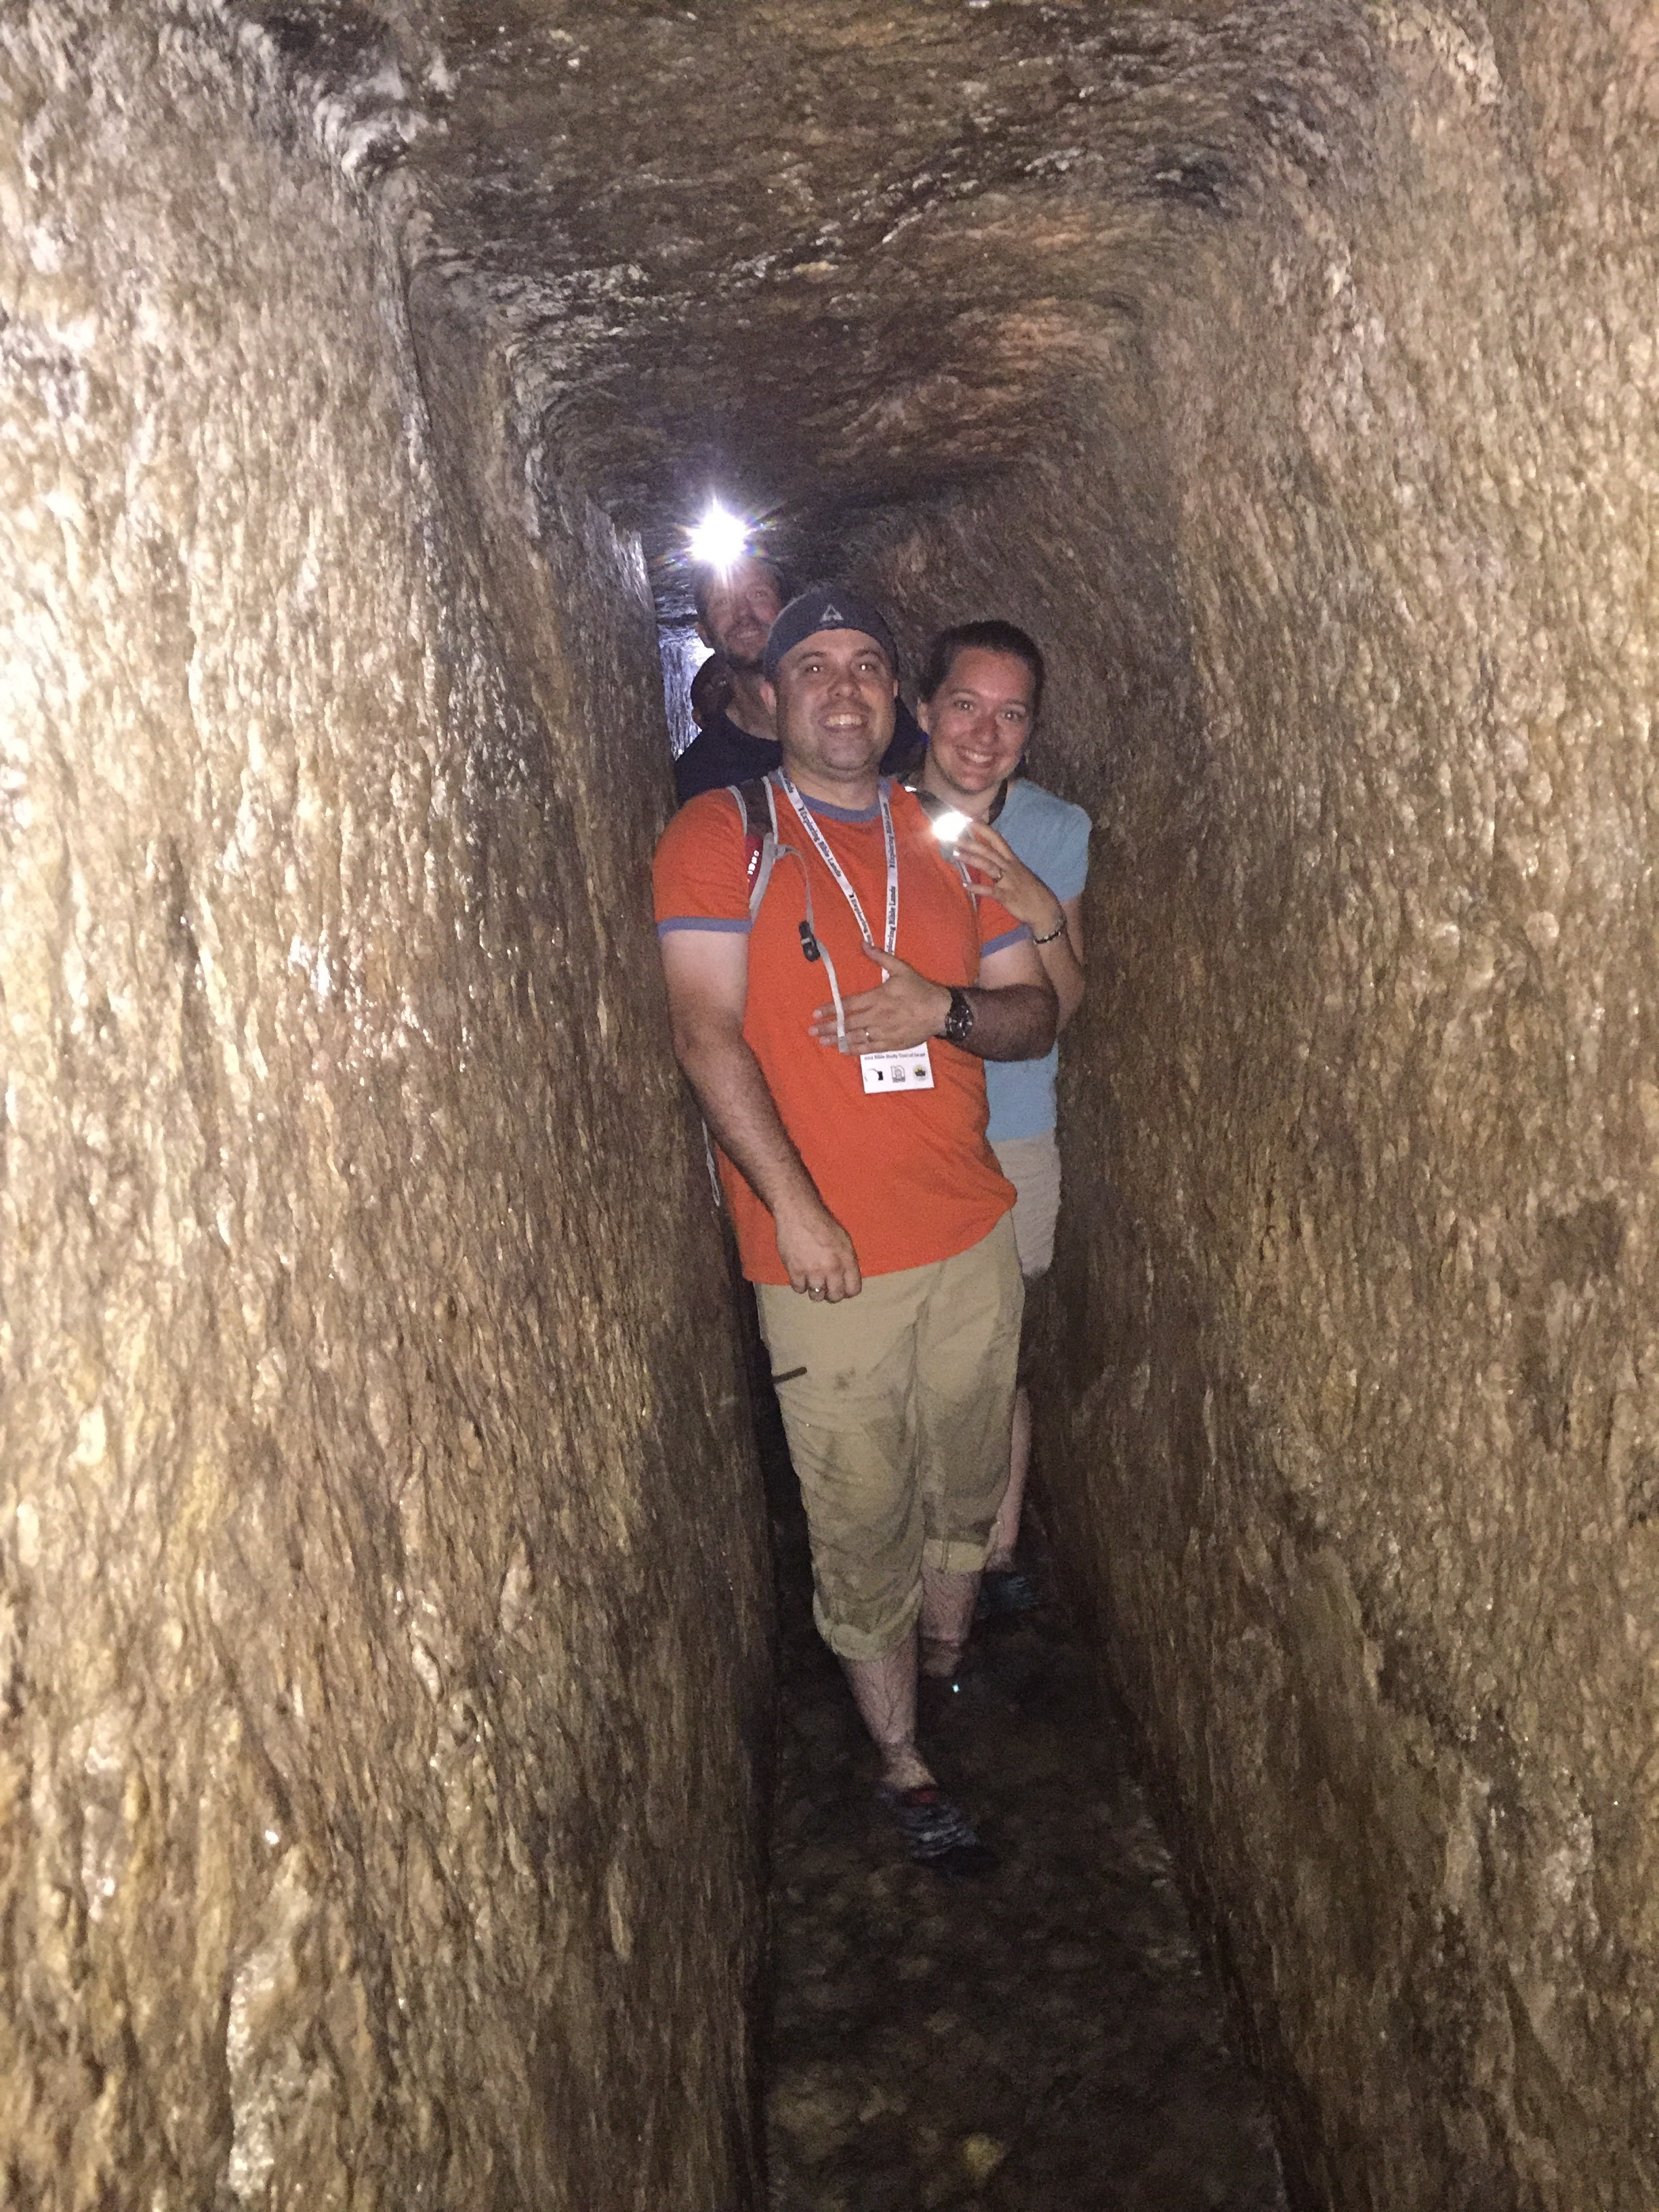 Walking through King Hezekiah's tunnel in the City of David (2 Kings 20:20). The tunnel runs 533 meters (1,748 feet), nearly the length of 6 footballs fields. The tunnel brings water from Gihon Spring to the Pool of Siloam. The water was cool and refreshing! About halfway through the tunnel we began singing hymns, and listend to the words echo off the solid rock passageway.